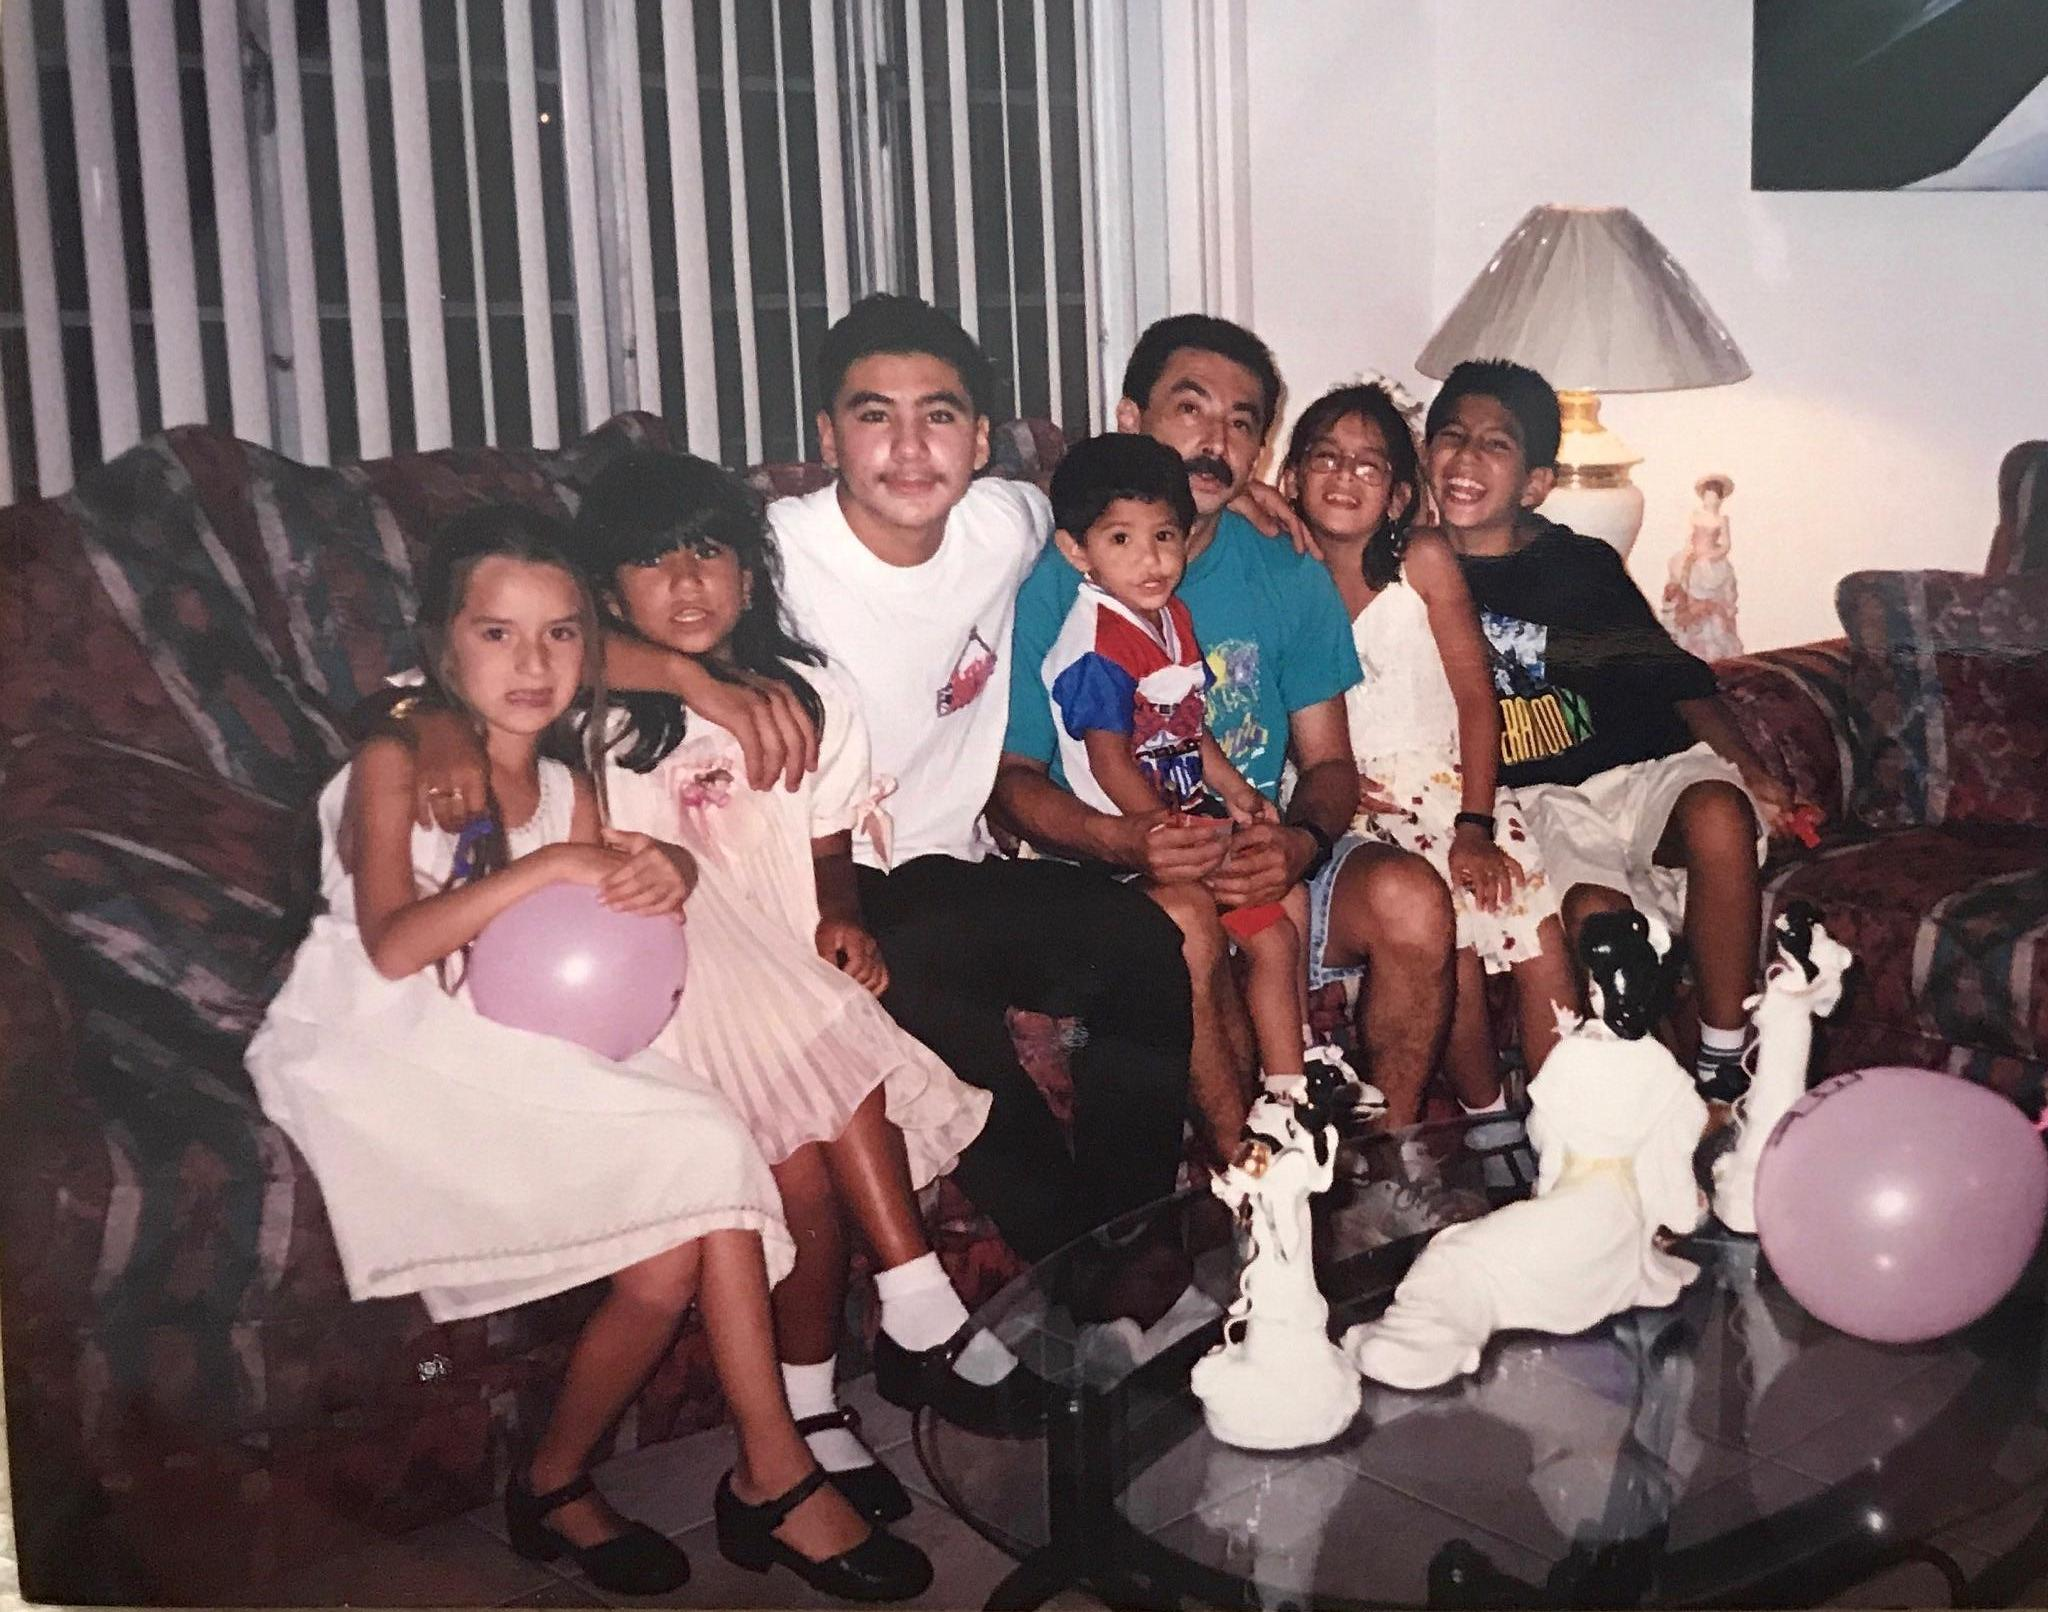 Family sitting on sofa in new home in Florida.